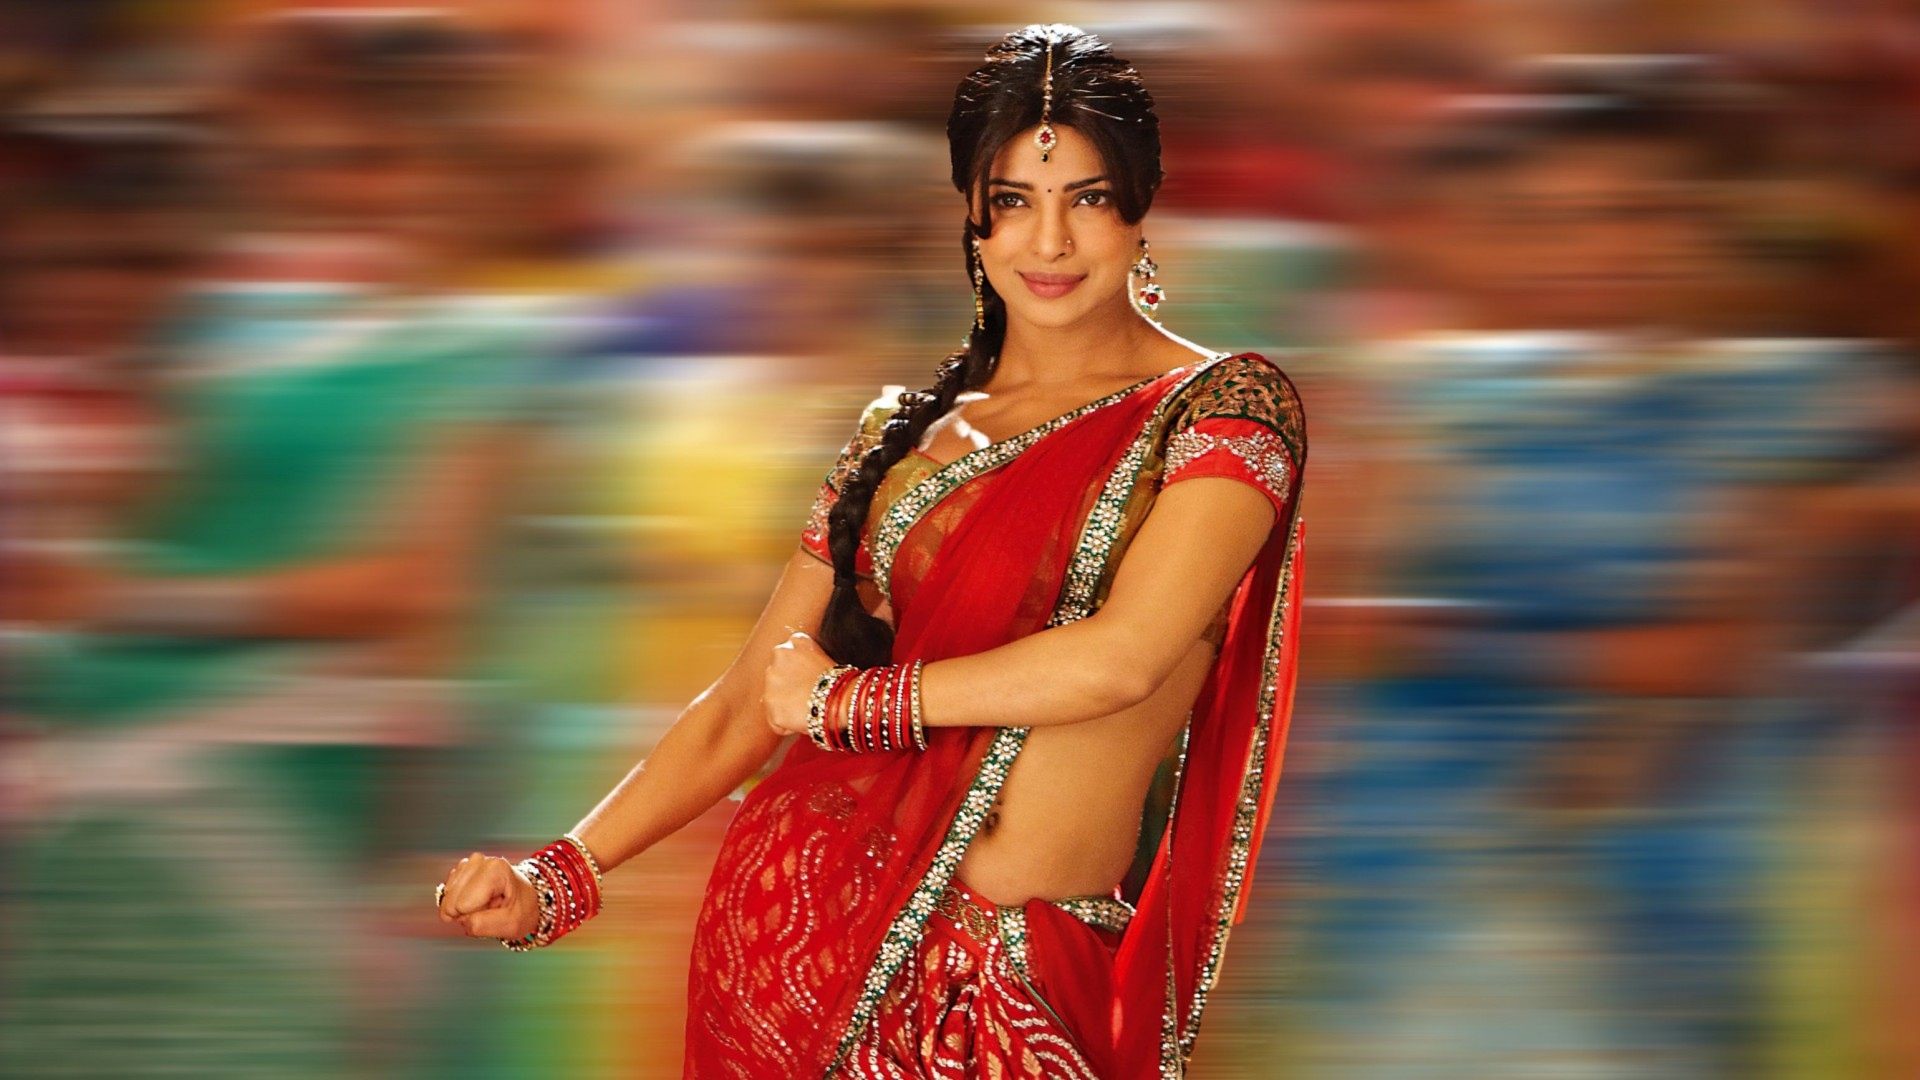 Priyanka Chopra in Saree HD Wallpaper